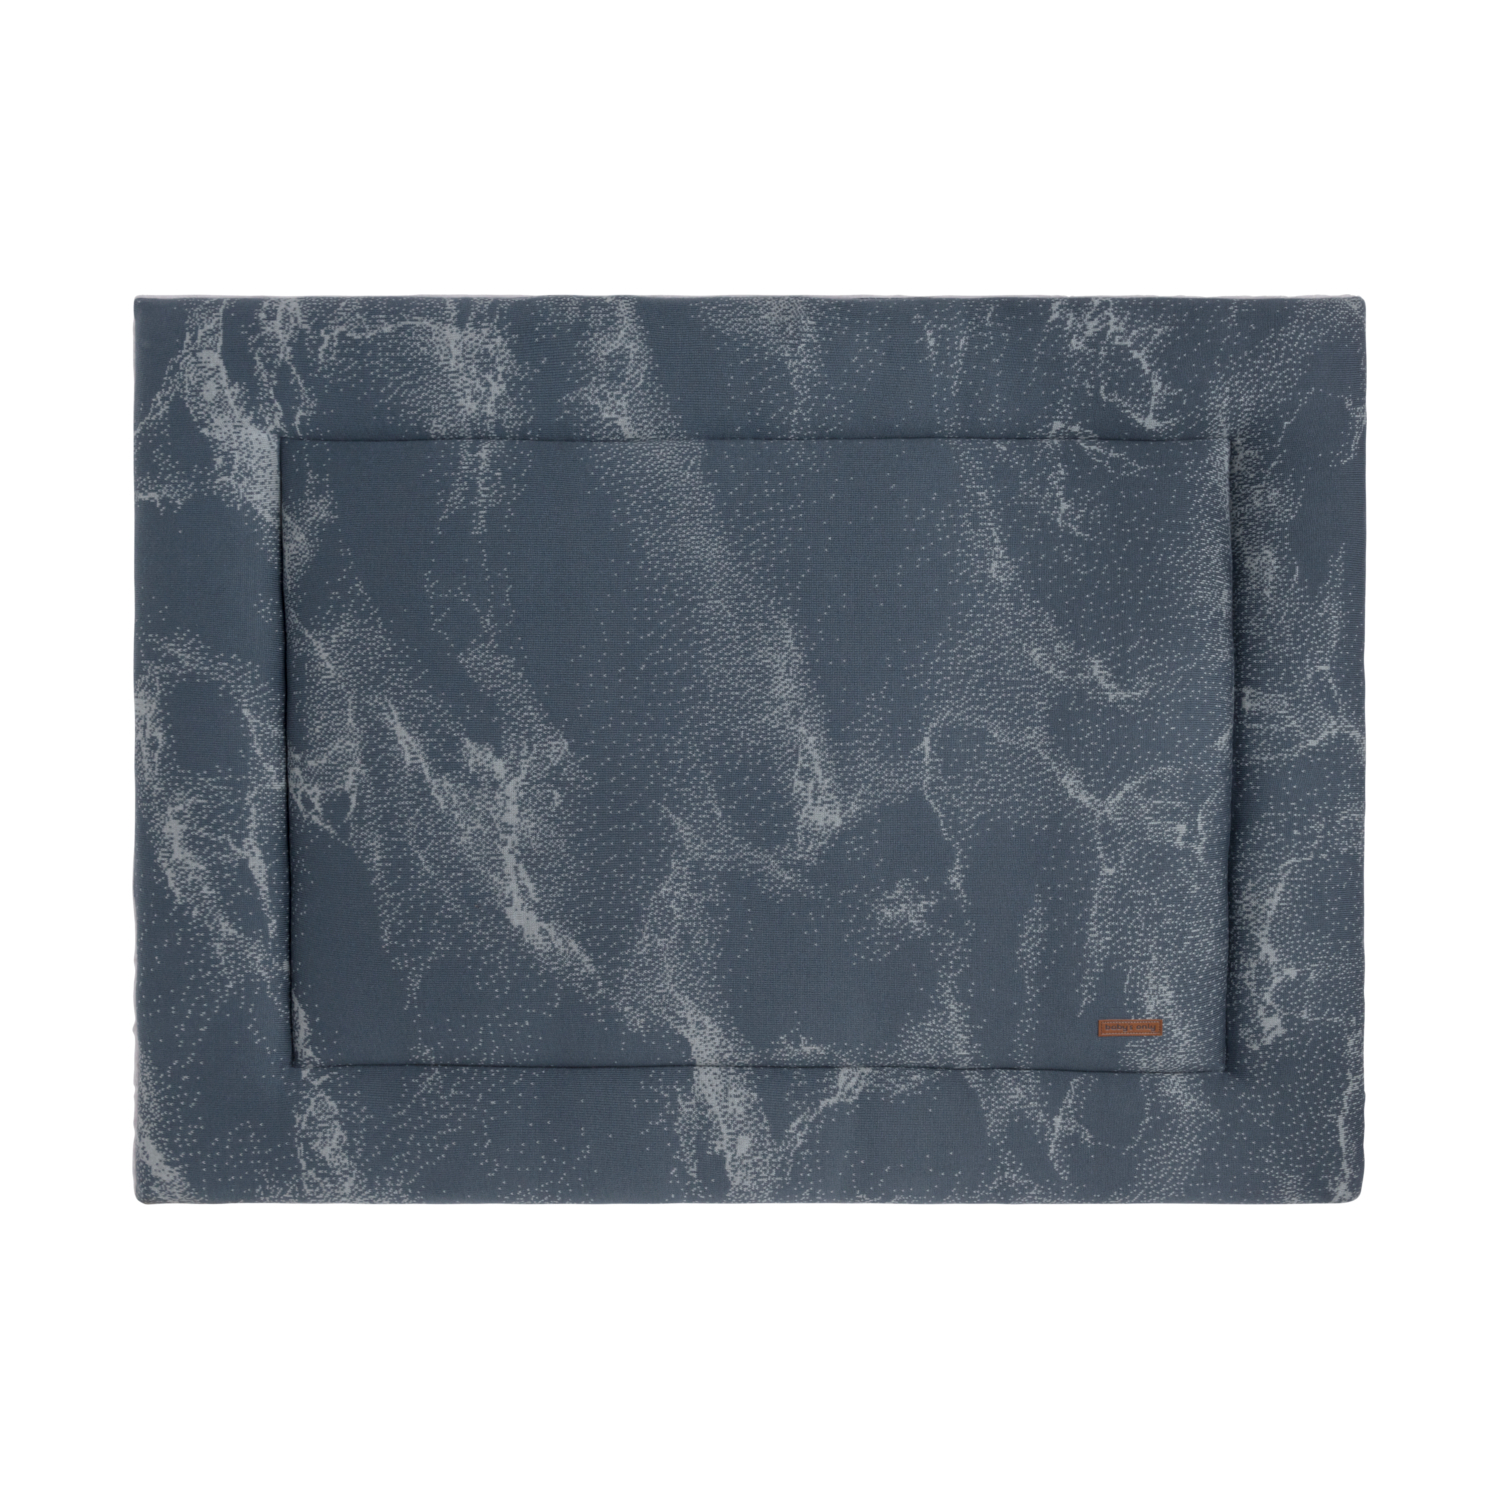 Baby's Only Marble Boxkleed Granit - Grijs 75 x 95 cm